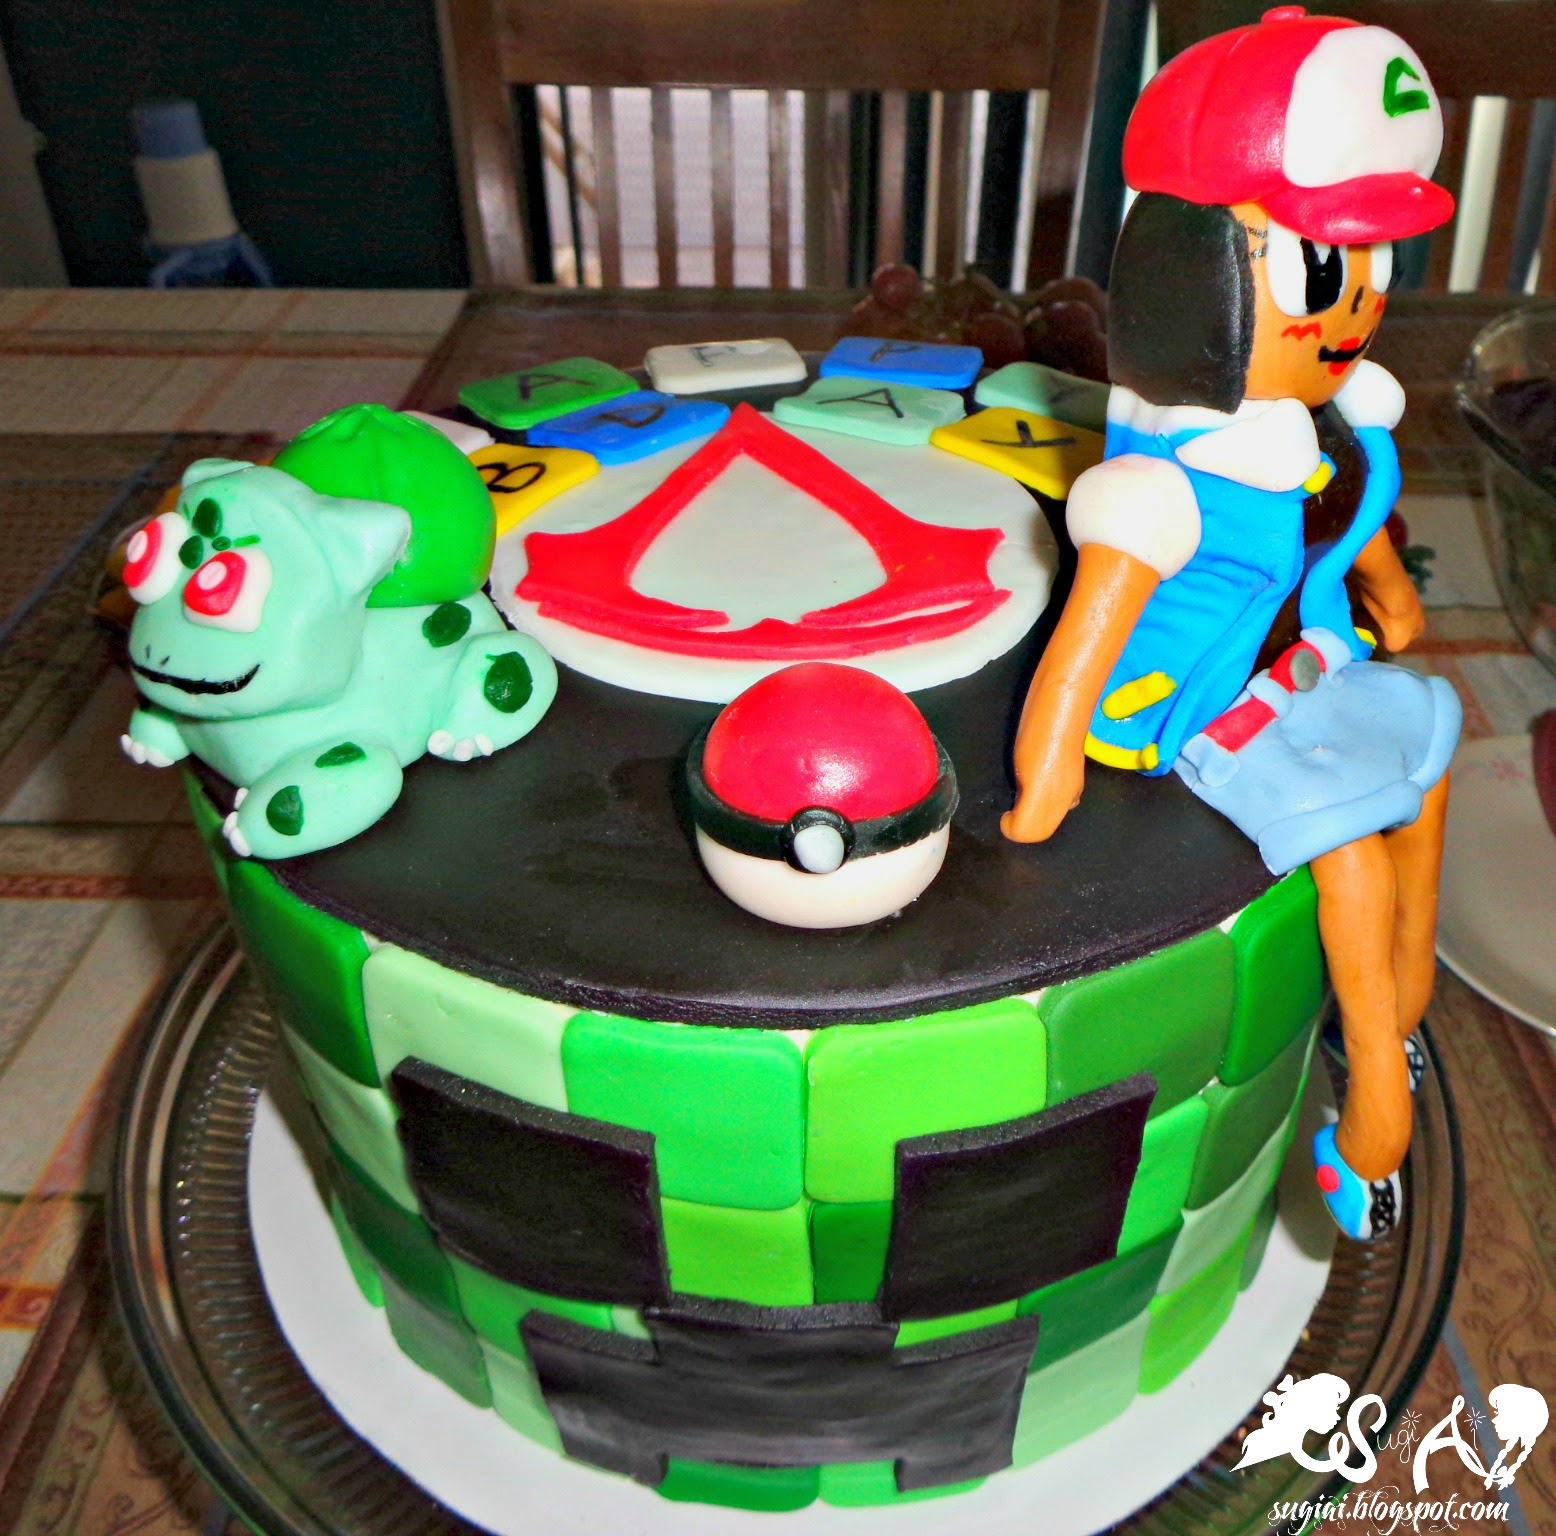 Phenomenal Video Game Birthday Cake Images The Cake Boutique Funny Birthday Cards Online Drosicarndamsfinfo